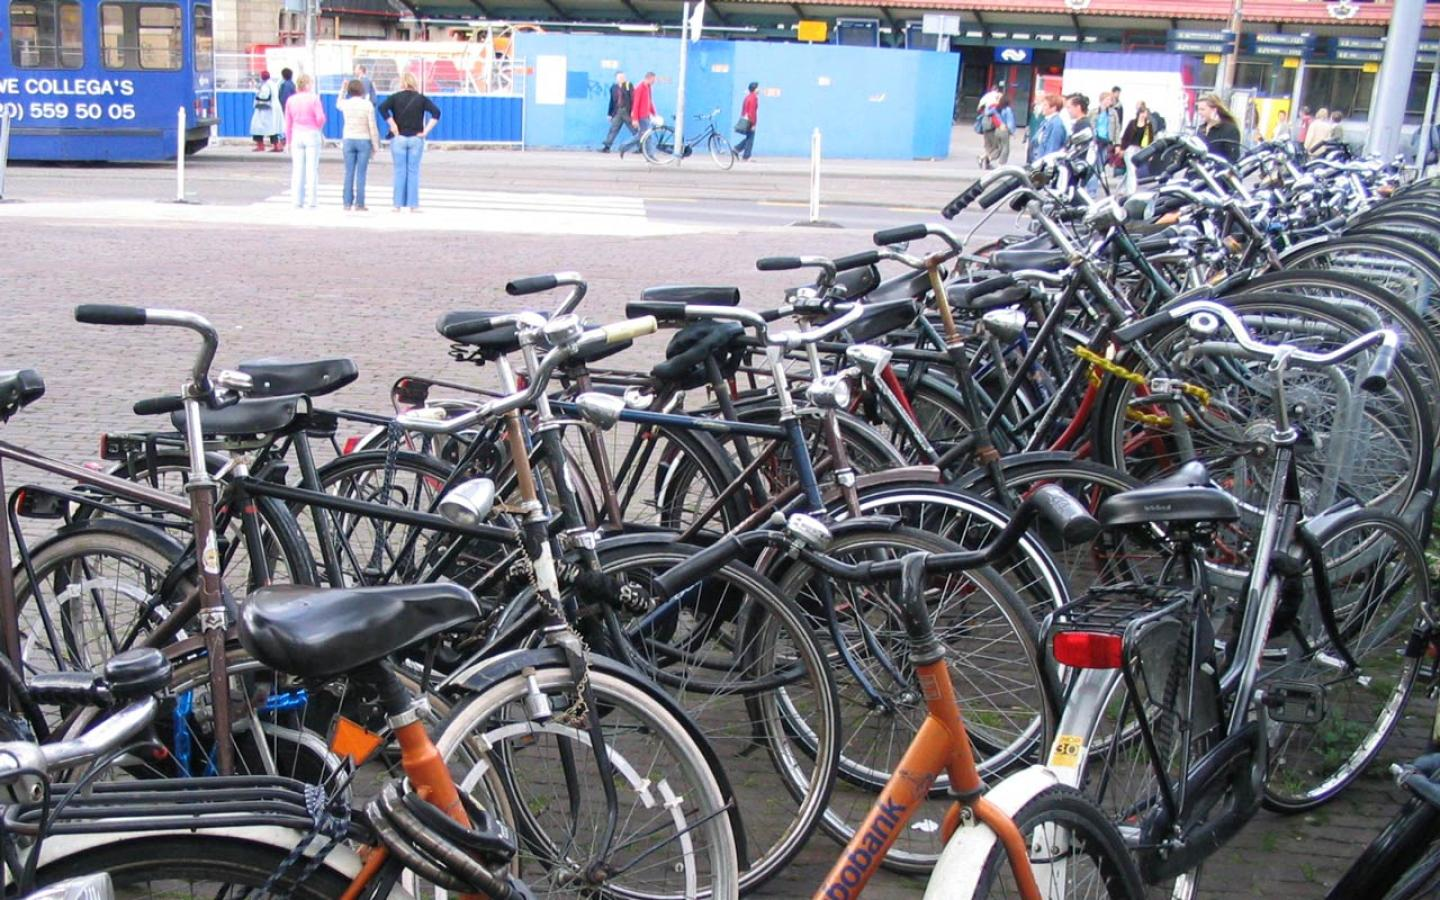 Amsterdam - Bicycles Wallpaper #1 1440 x 900